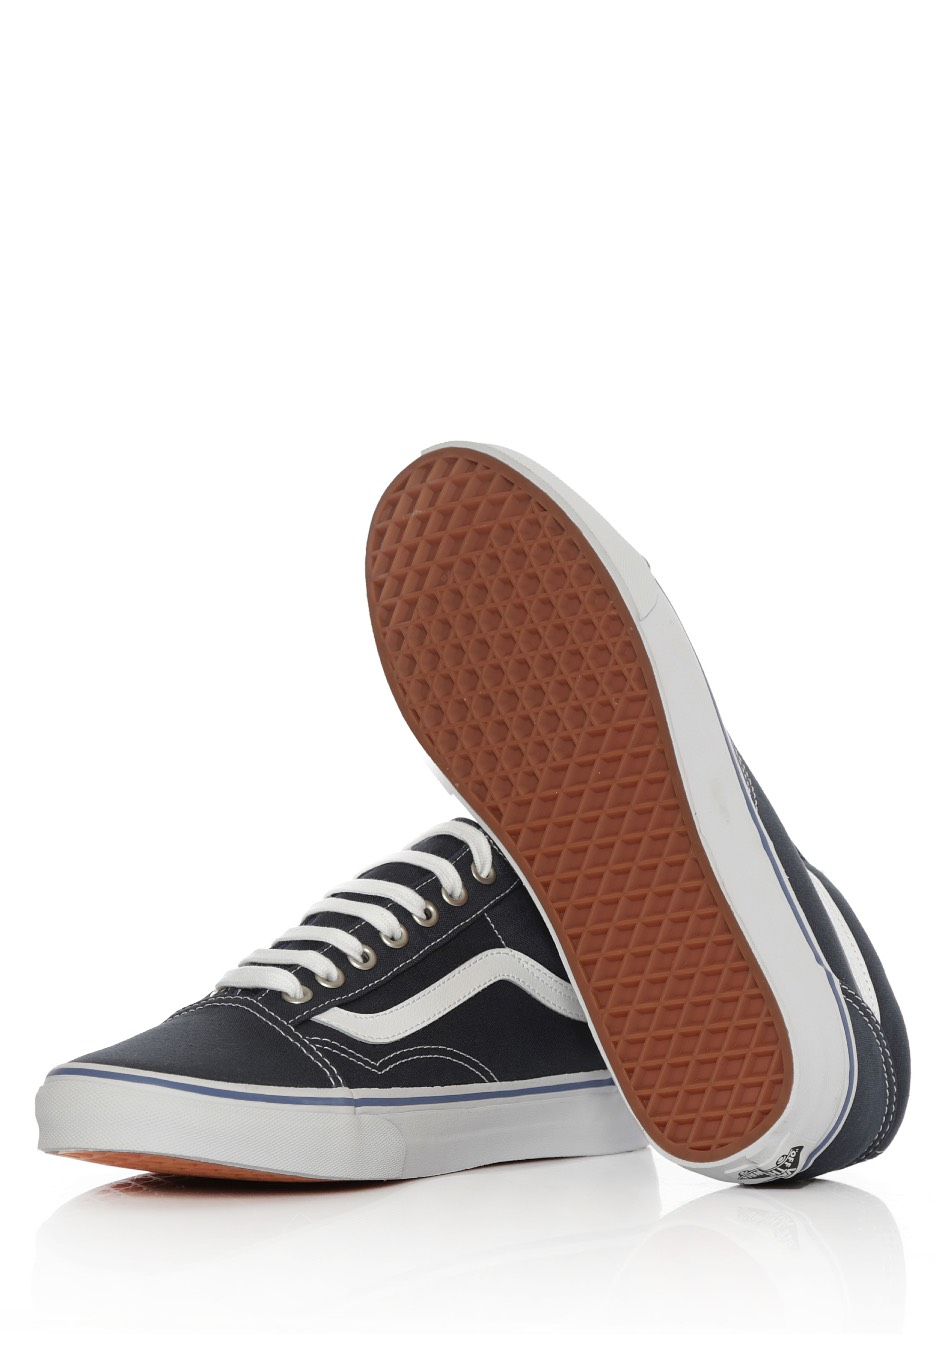 20042b92d1afbd Vans - Old Skool Midnight Navy True White - Shoes - Impericon.com AU